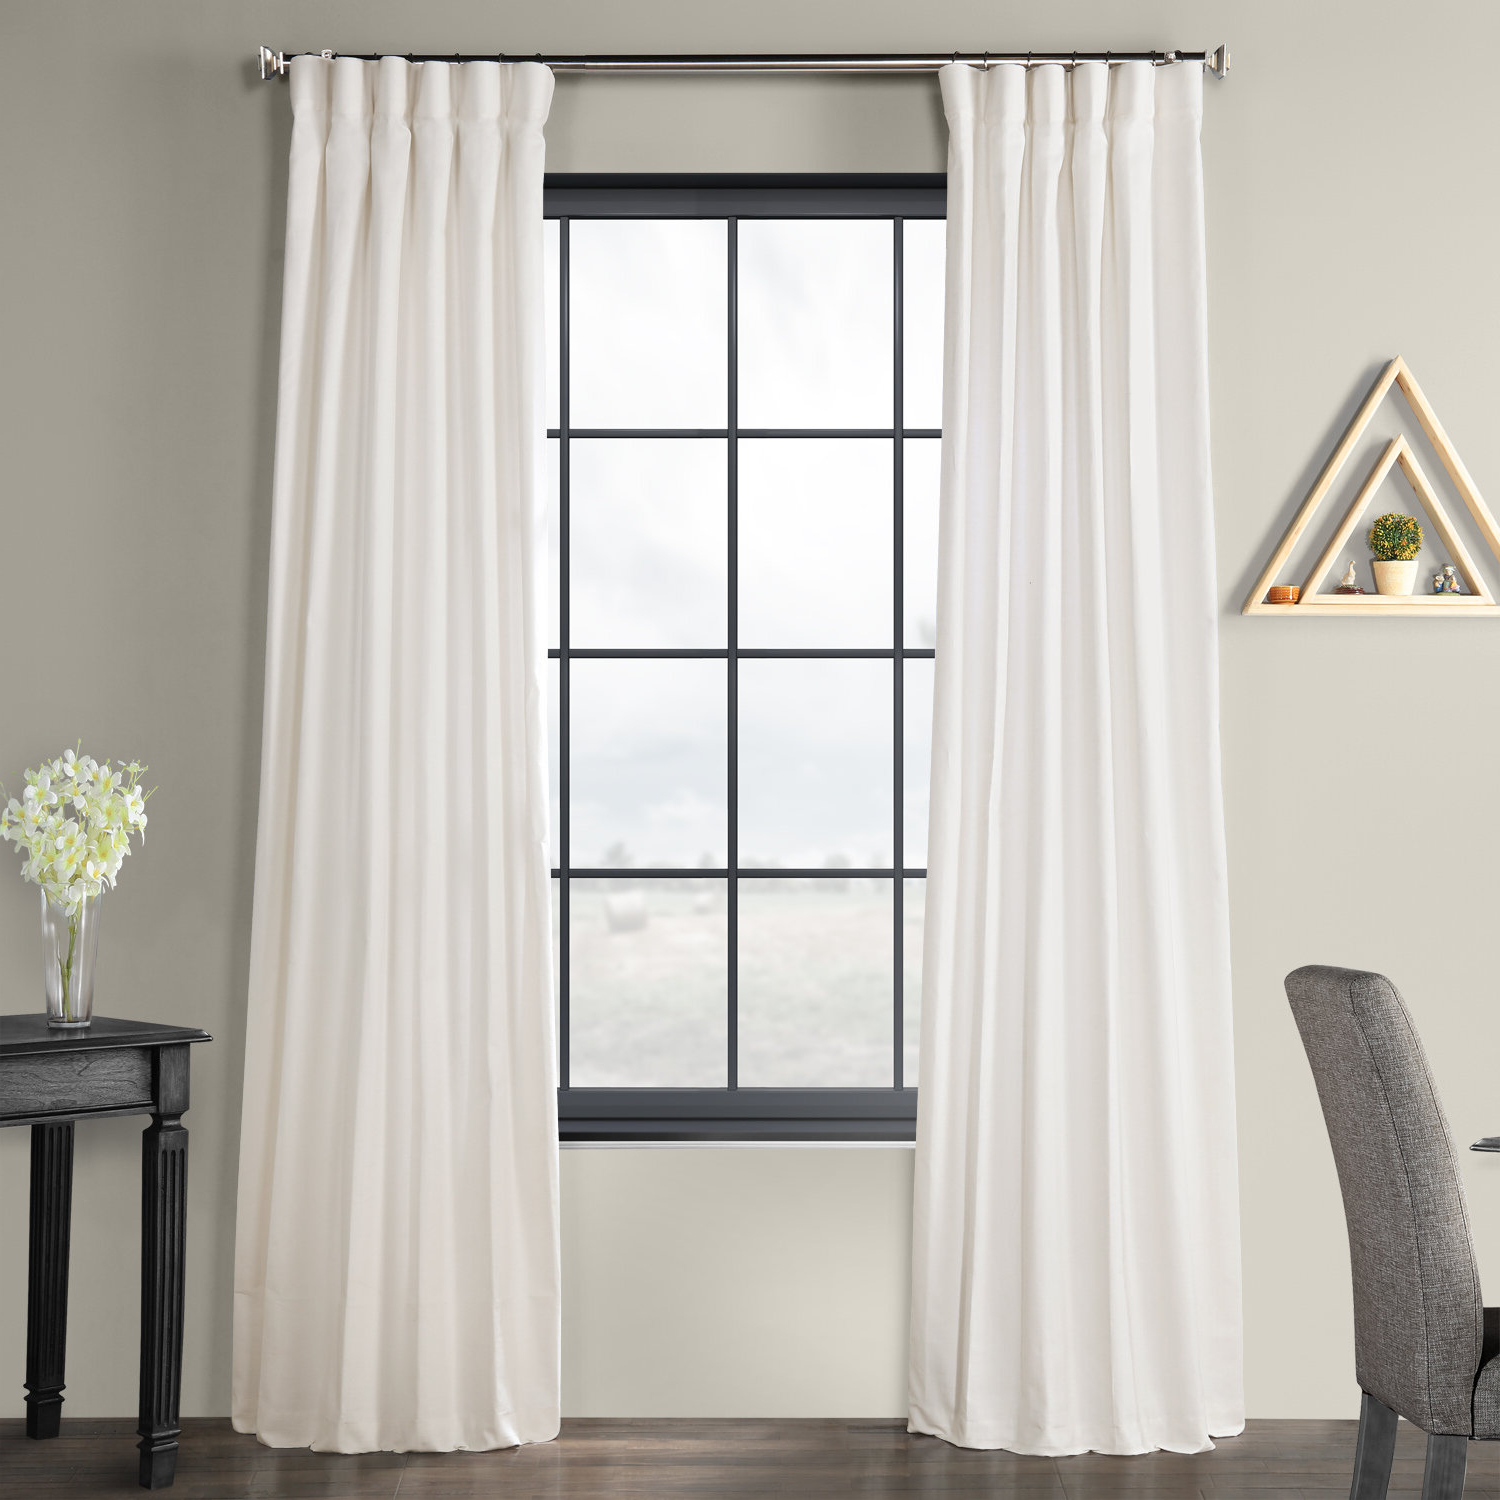 Solid Country Cotton Linen Weave Curtain Panels With Regard To Most Current Sanger Solid Country Cotton Linen Weave Rod Pocket Single Curtain Panel (View 18 of 20)